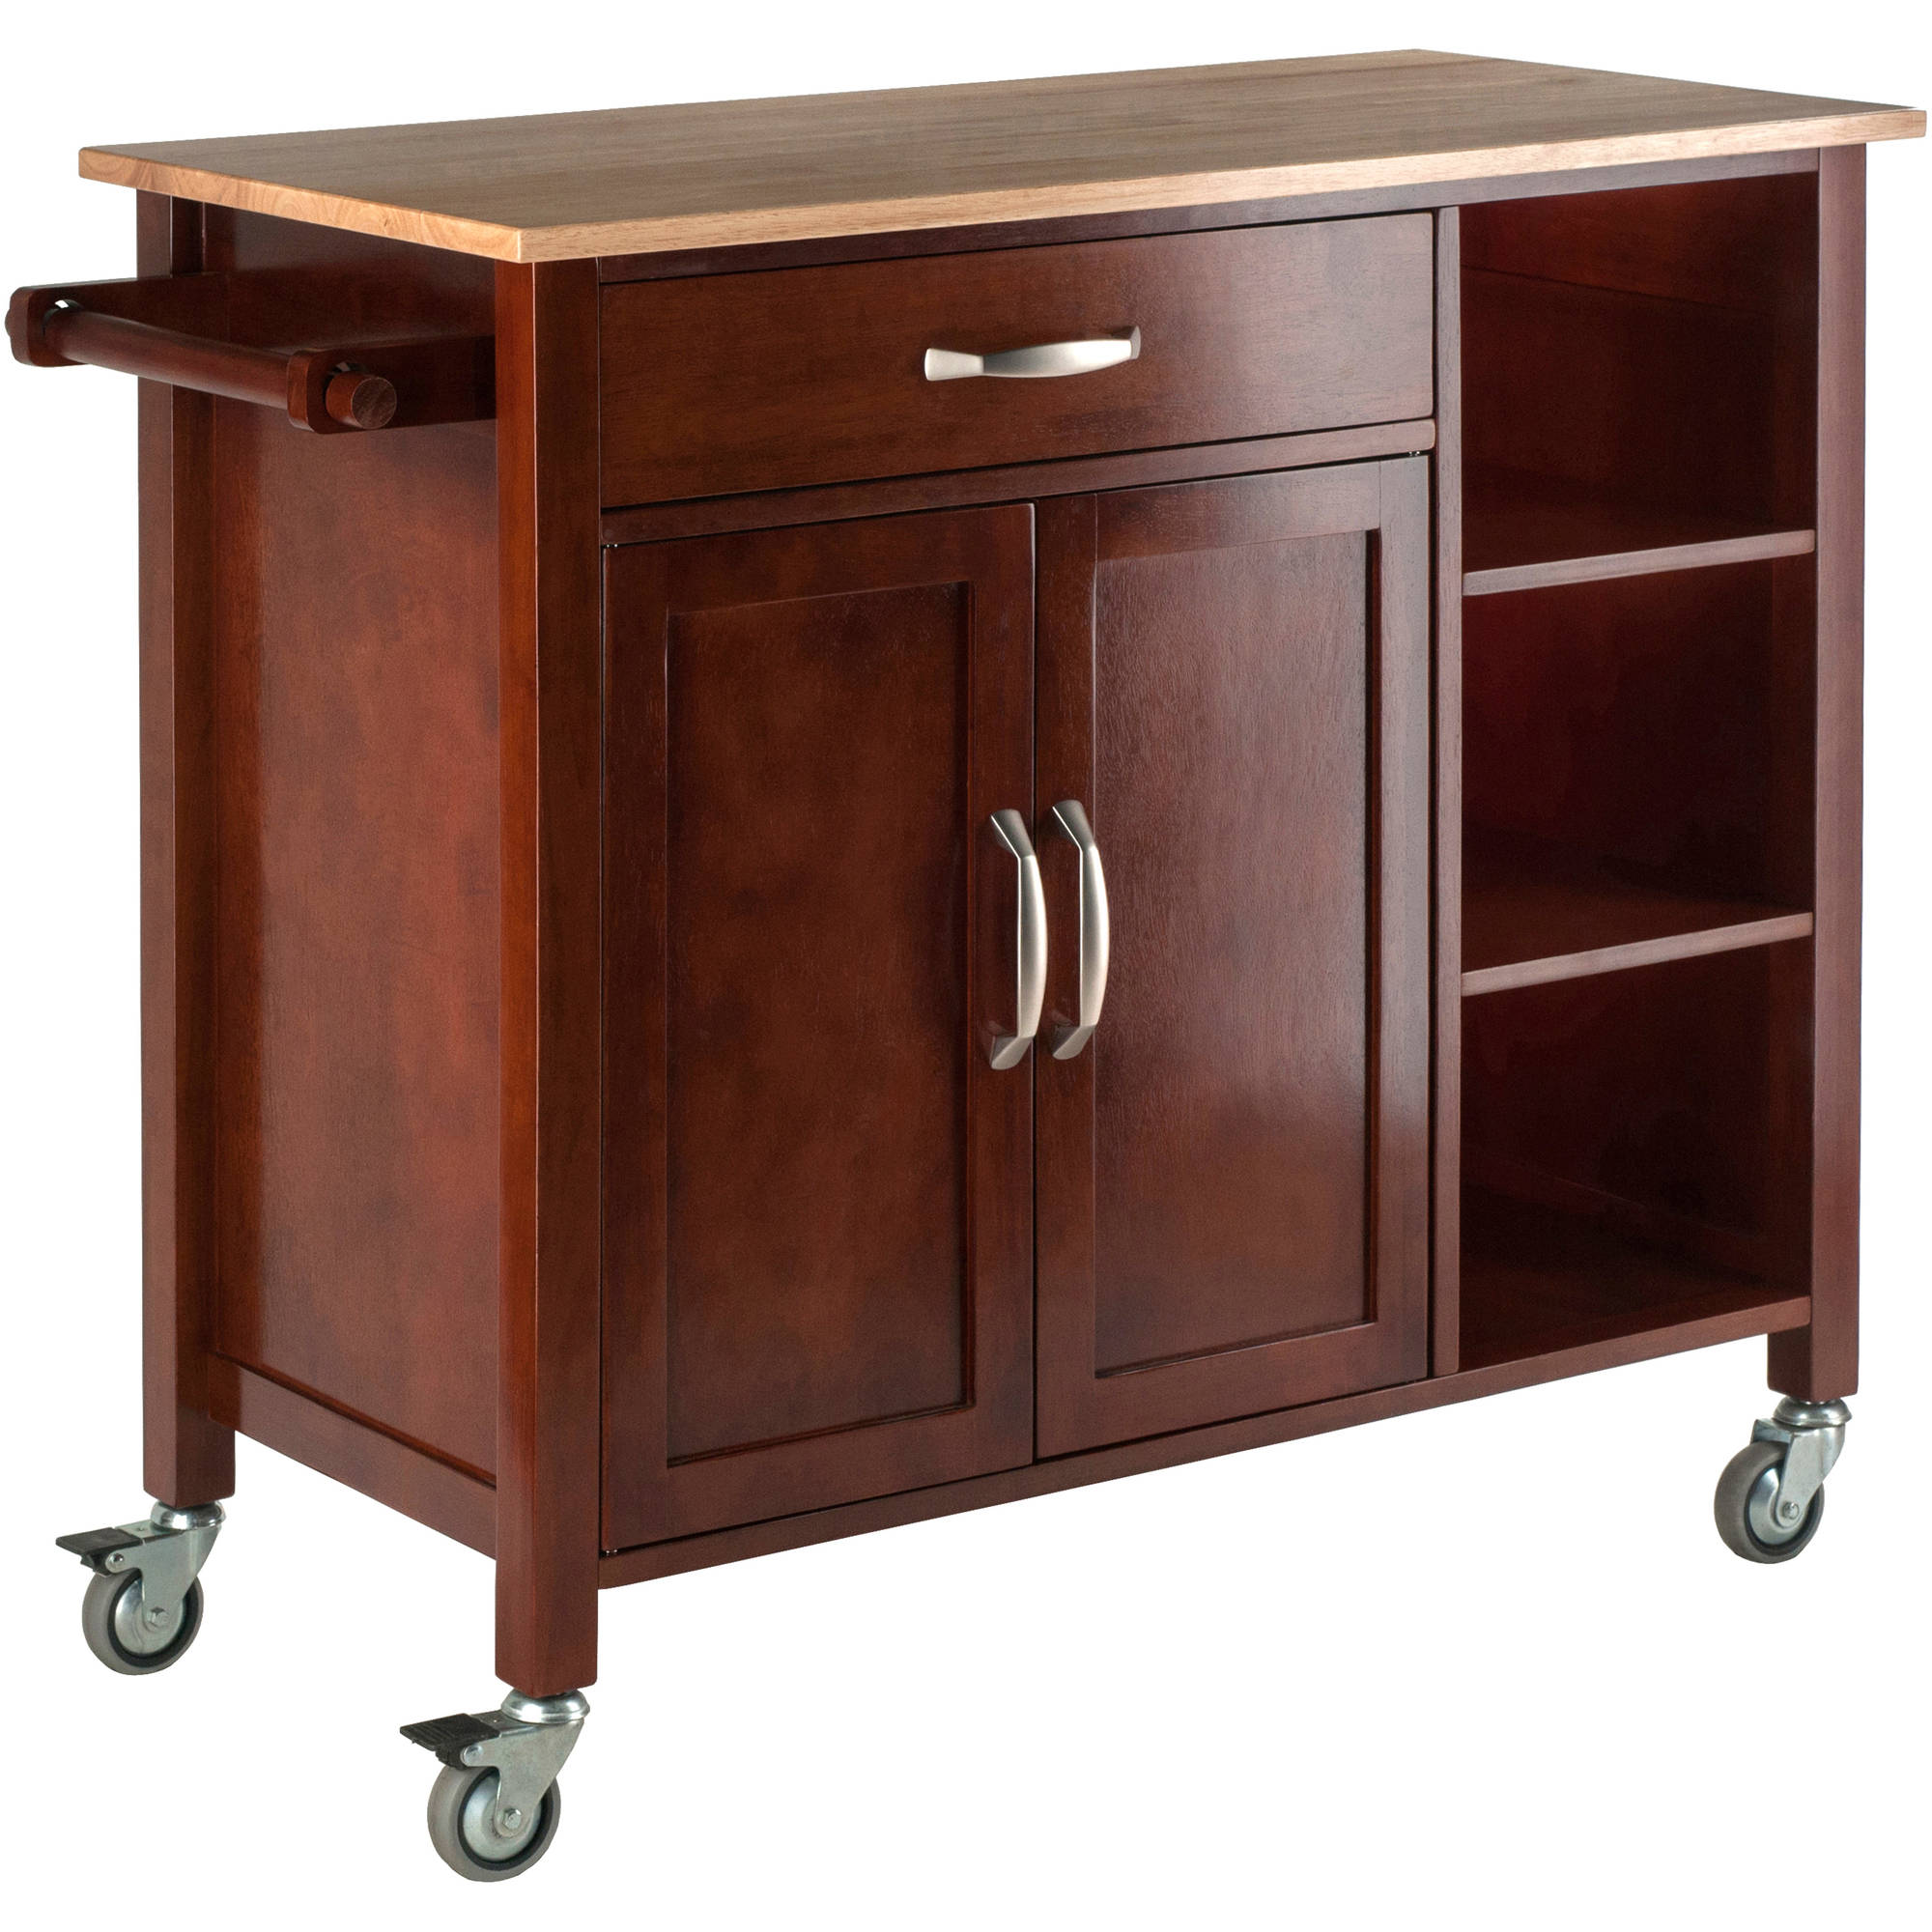 winsome wood mabel utility kitchen cart walnut natural accent table basement furniture console with drawers unfinished bedside home lamps ikea patio sheesham dining black and